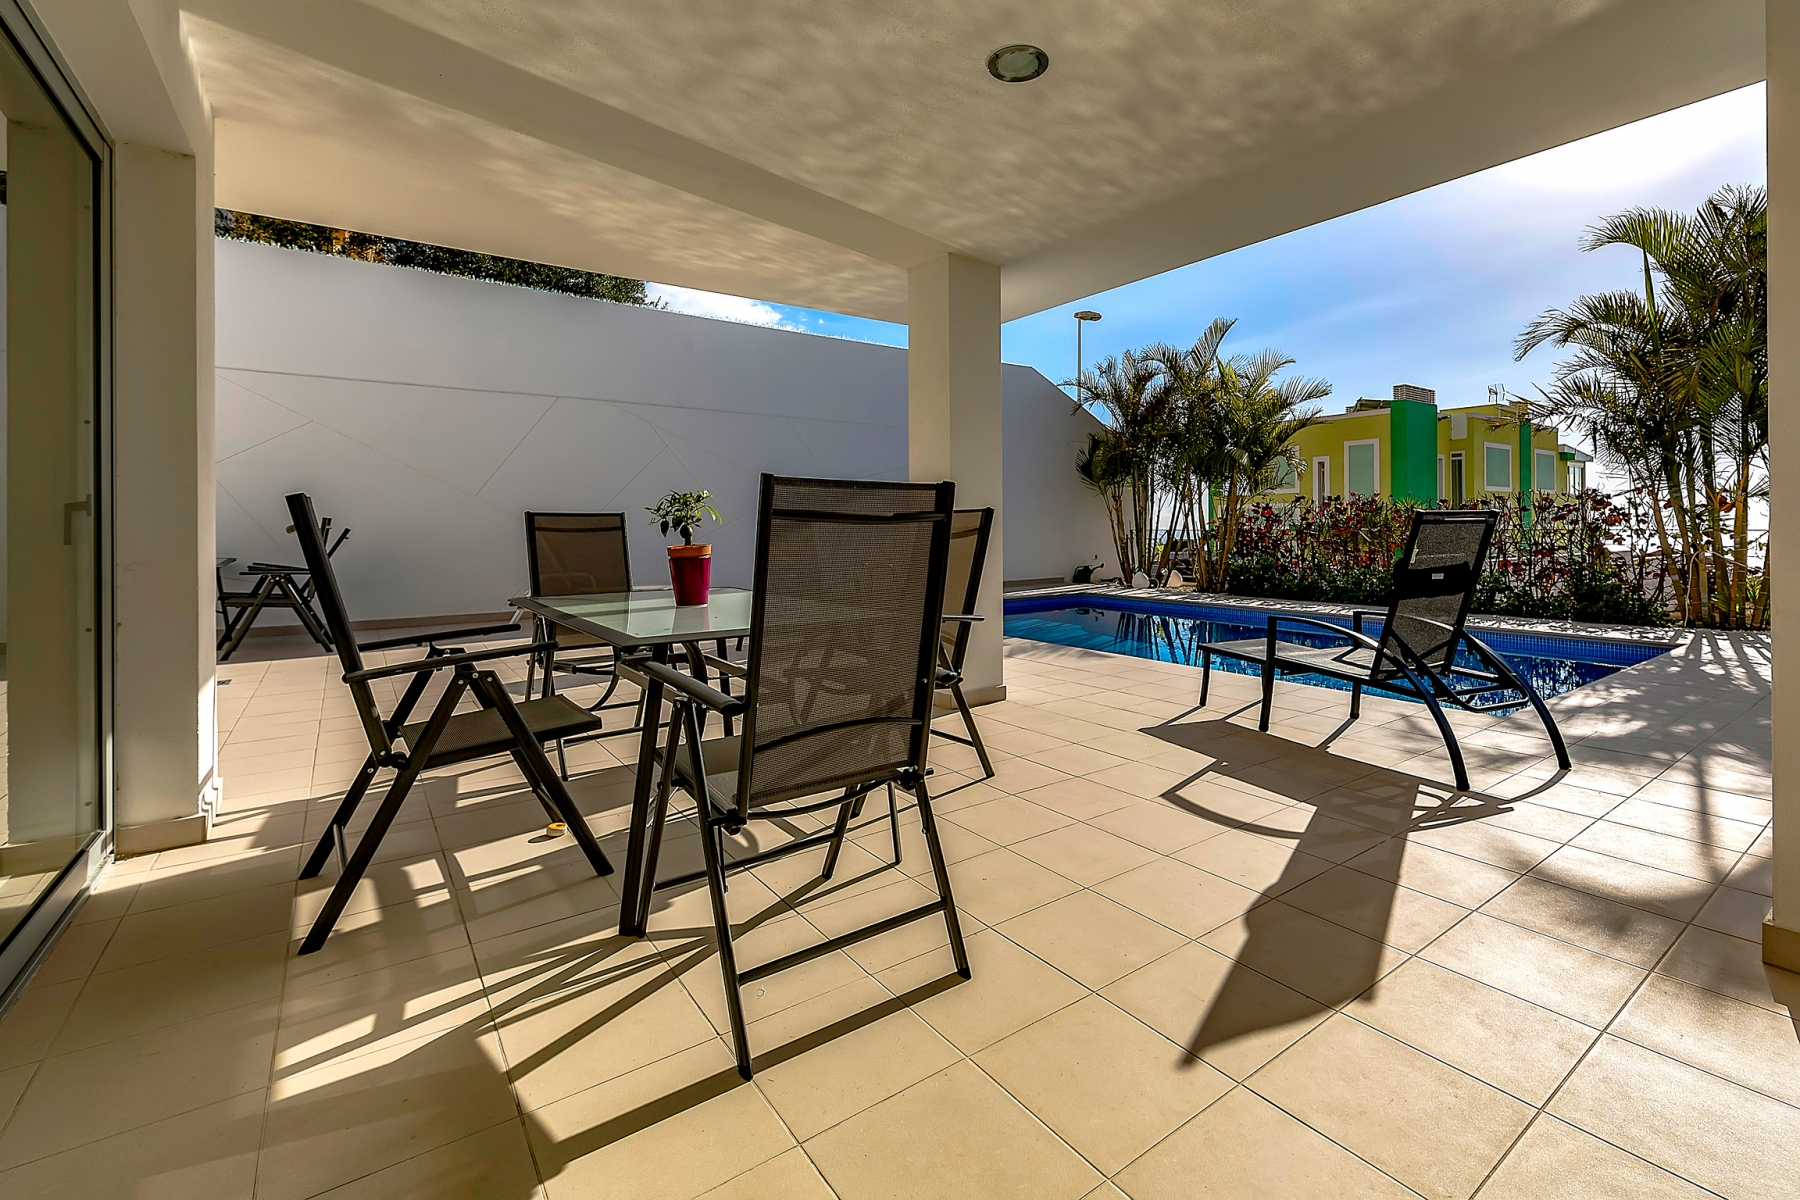 Properties for Sale in Tenerife, Canary Islands, Spain   SylkWayStar Real Estate. Luxury villa in the fashionable area of the south of the island of Tenerife – Madroñal.. Image-22832